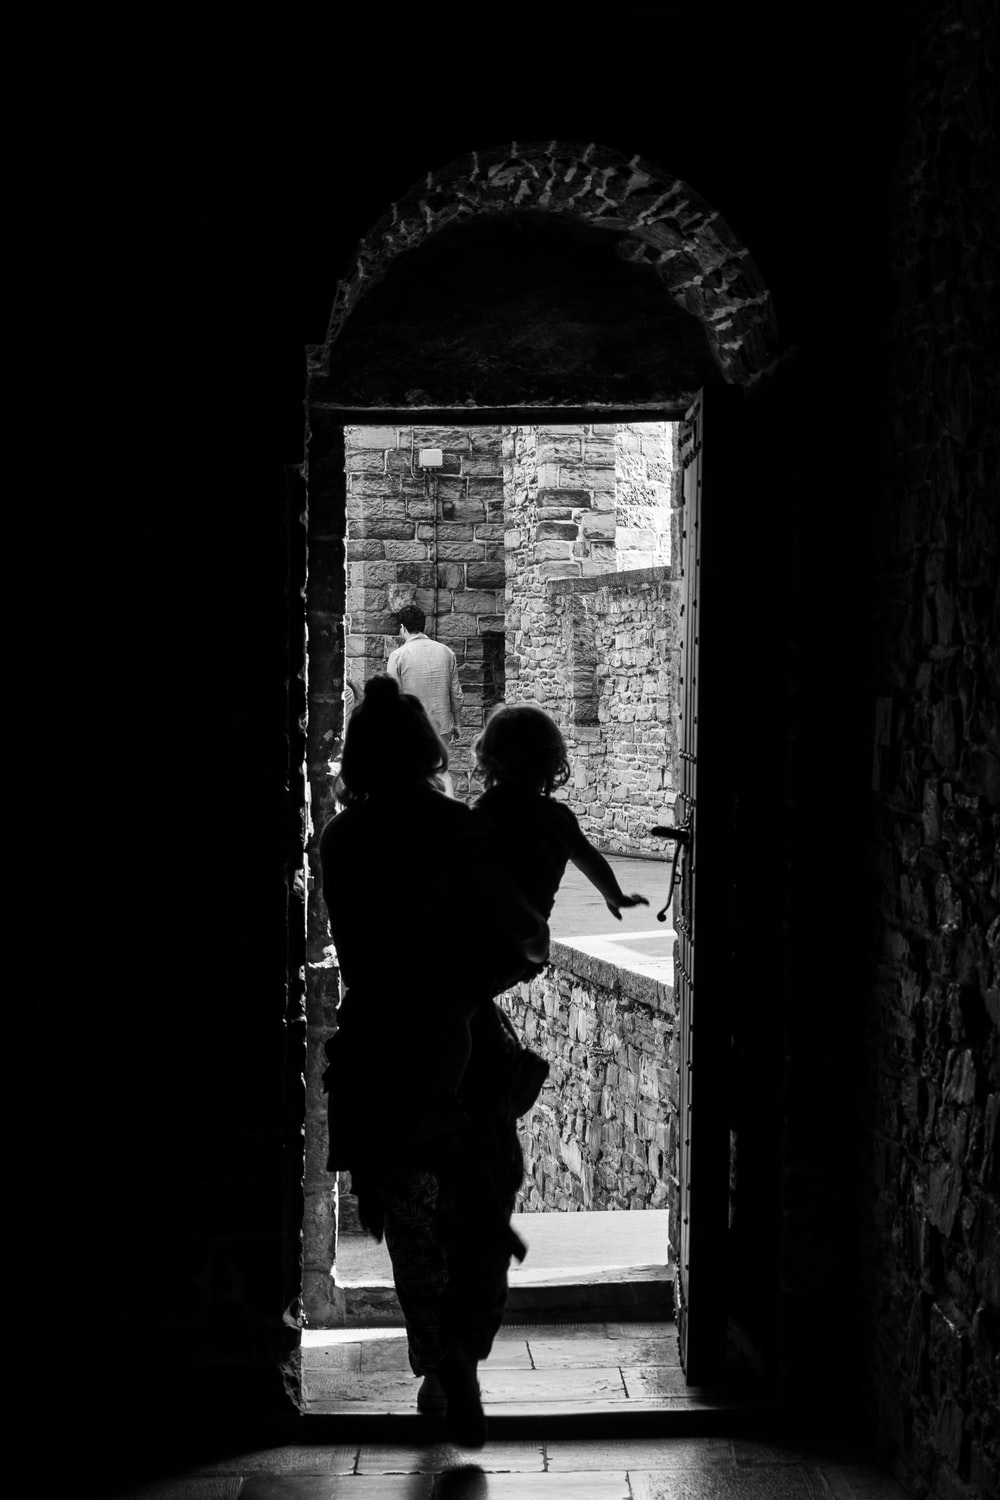 silhouette of woman holding baby